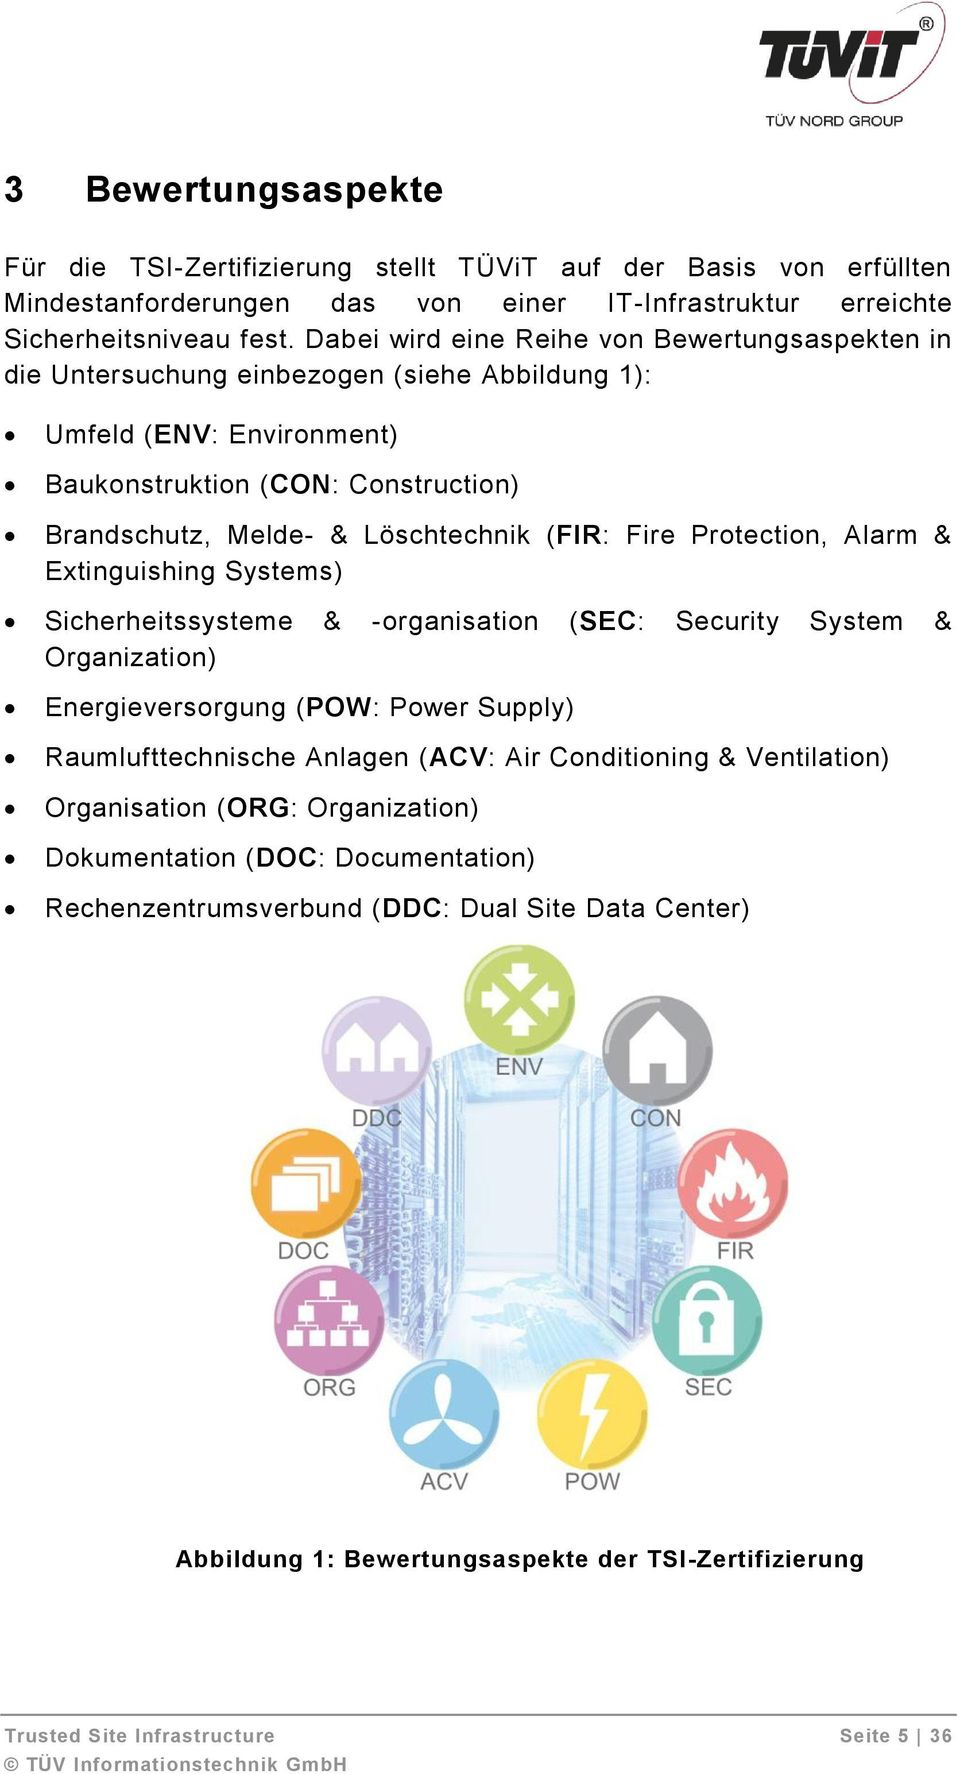 Fire Protection, Alarm & Extinguishing Systems) Sicherheitssysteme & -organisation (SEC: Security System & Organization) Energieversorgung (POW: Power Supply) Raumlufttechnische Anlagen (ACV: Air